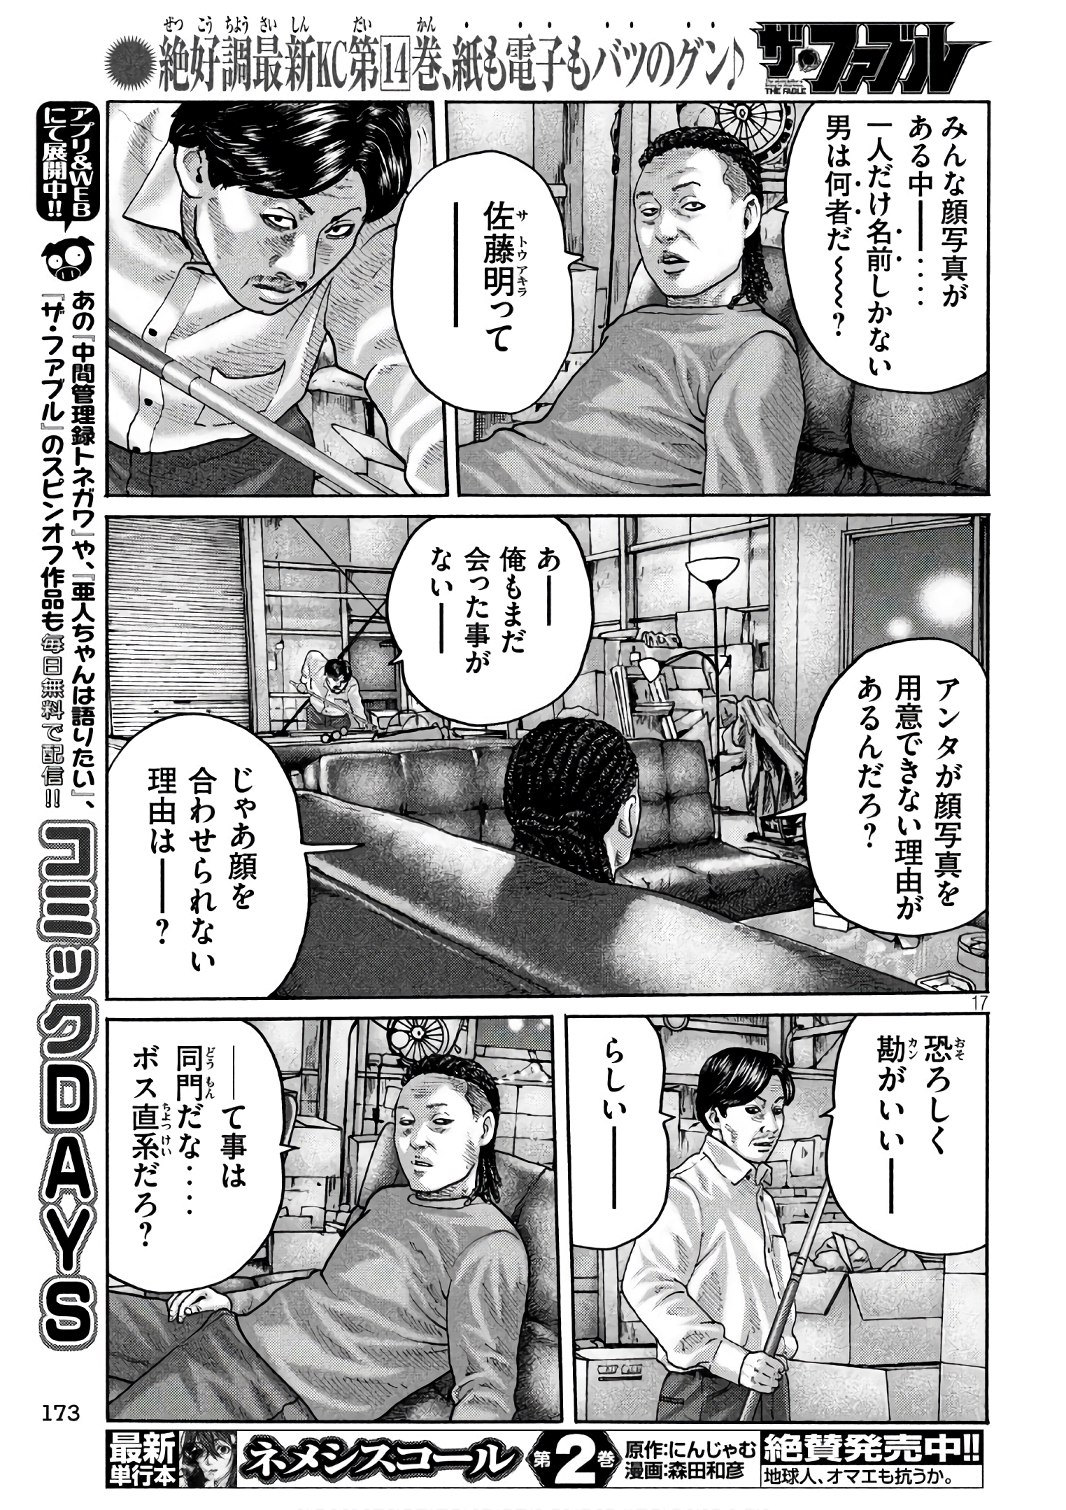 The Fable - Raw Chapter 173 - LHScan.net